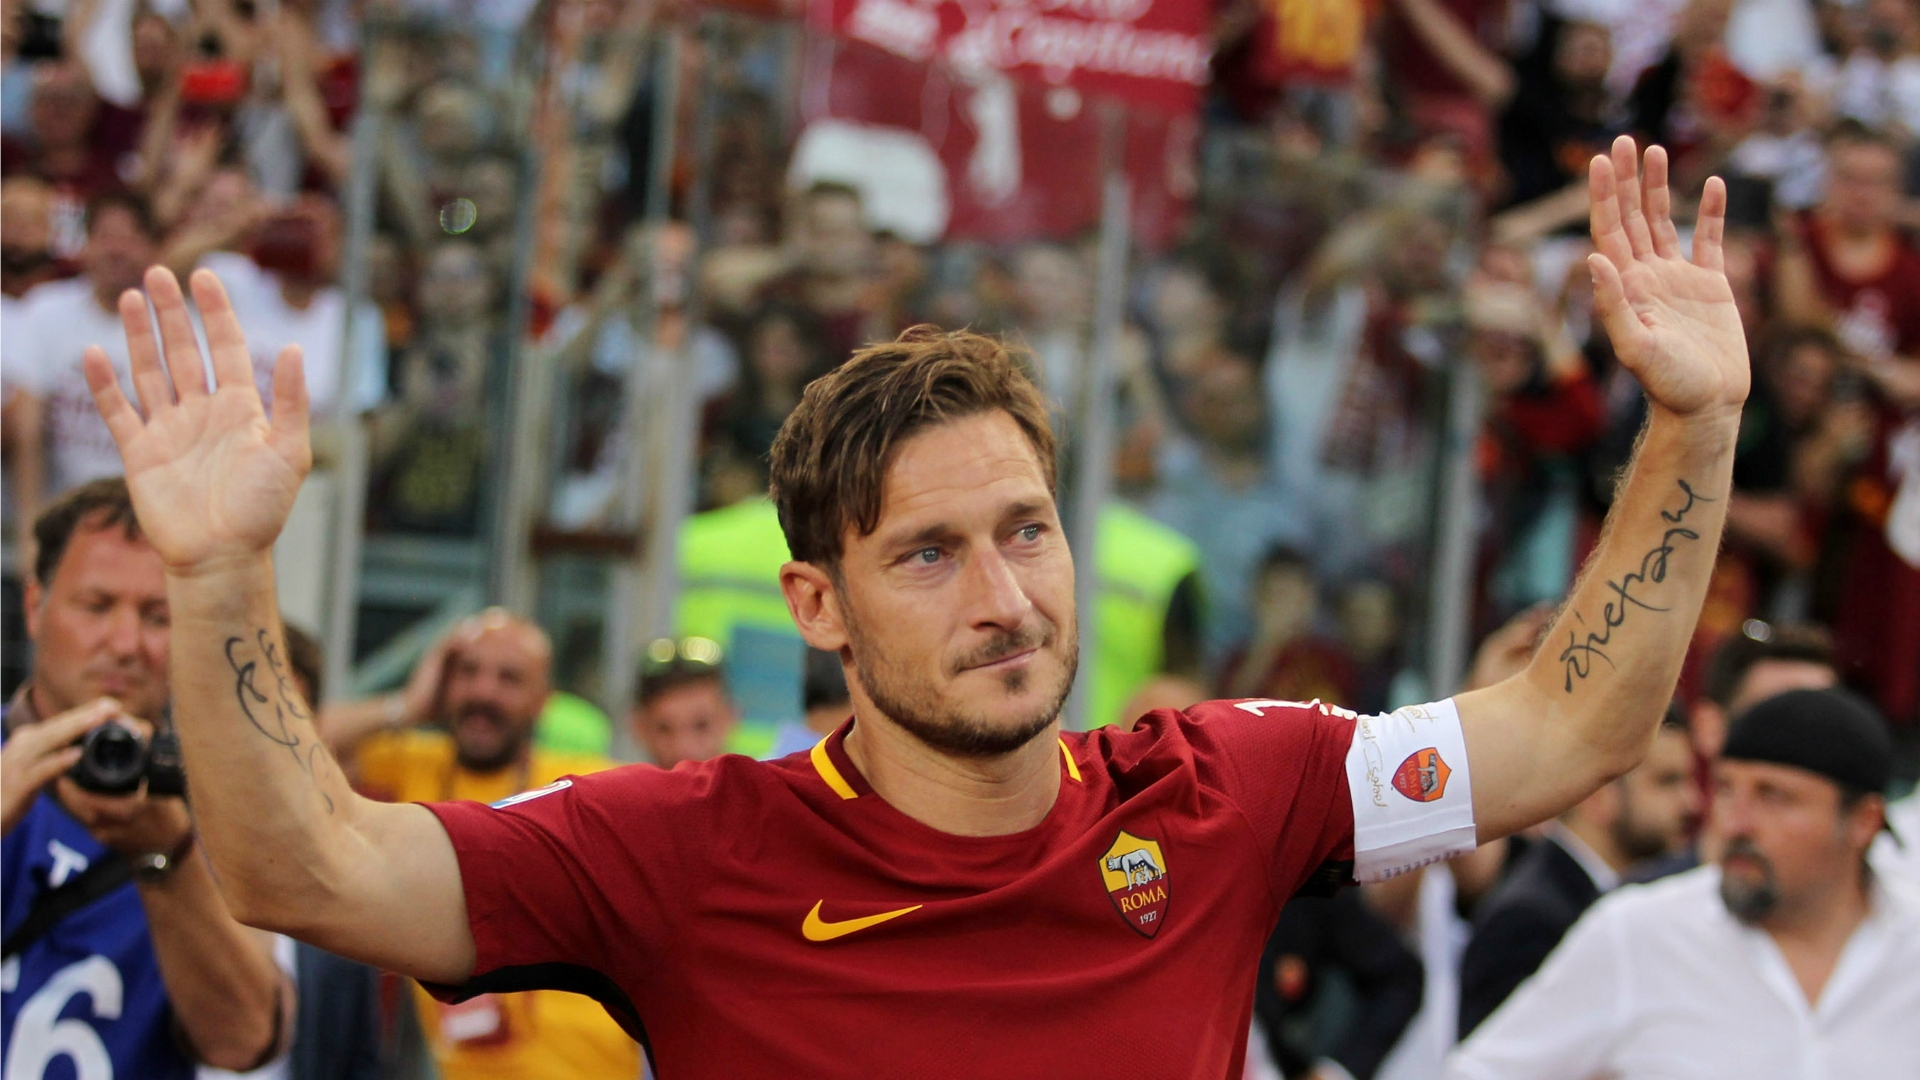 Francesco Totti delivered an emotional speech at the end of the game